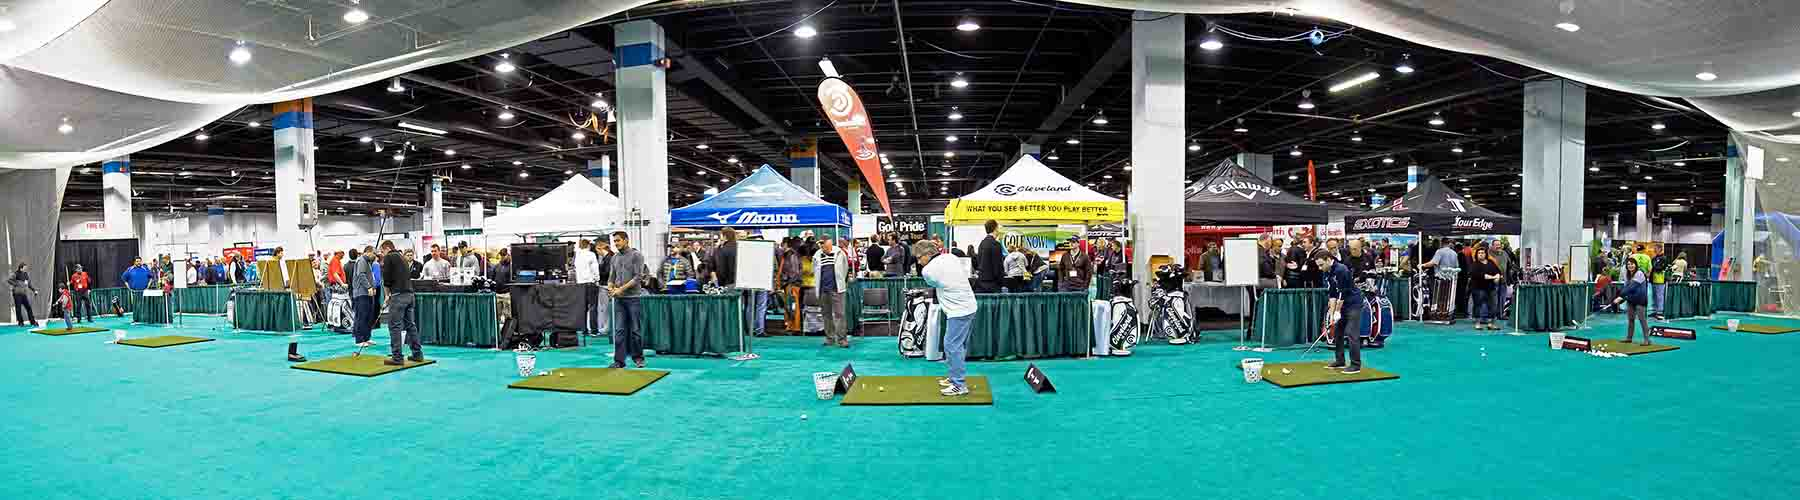 Chicago Golf Show Panoramic